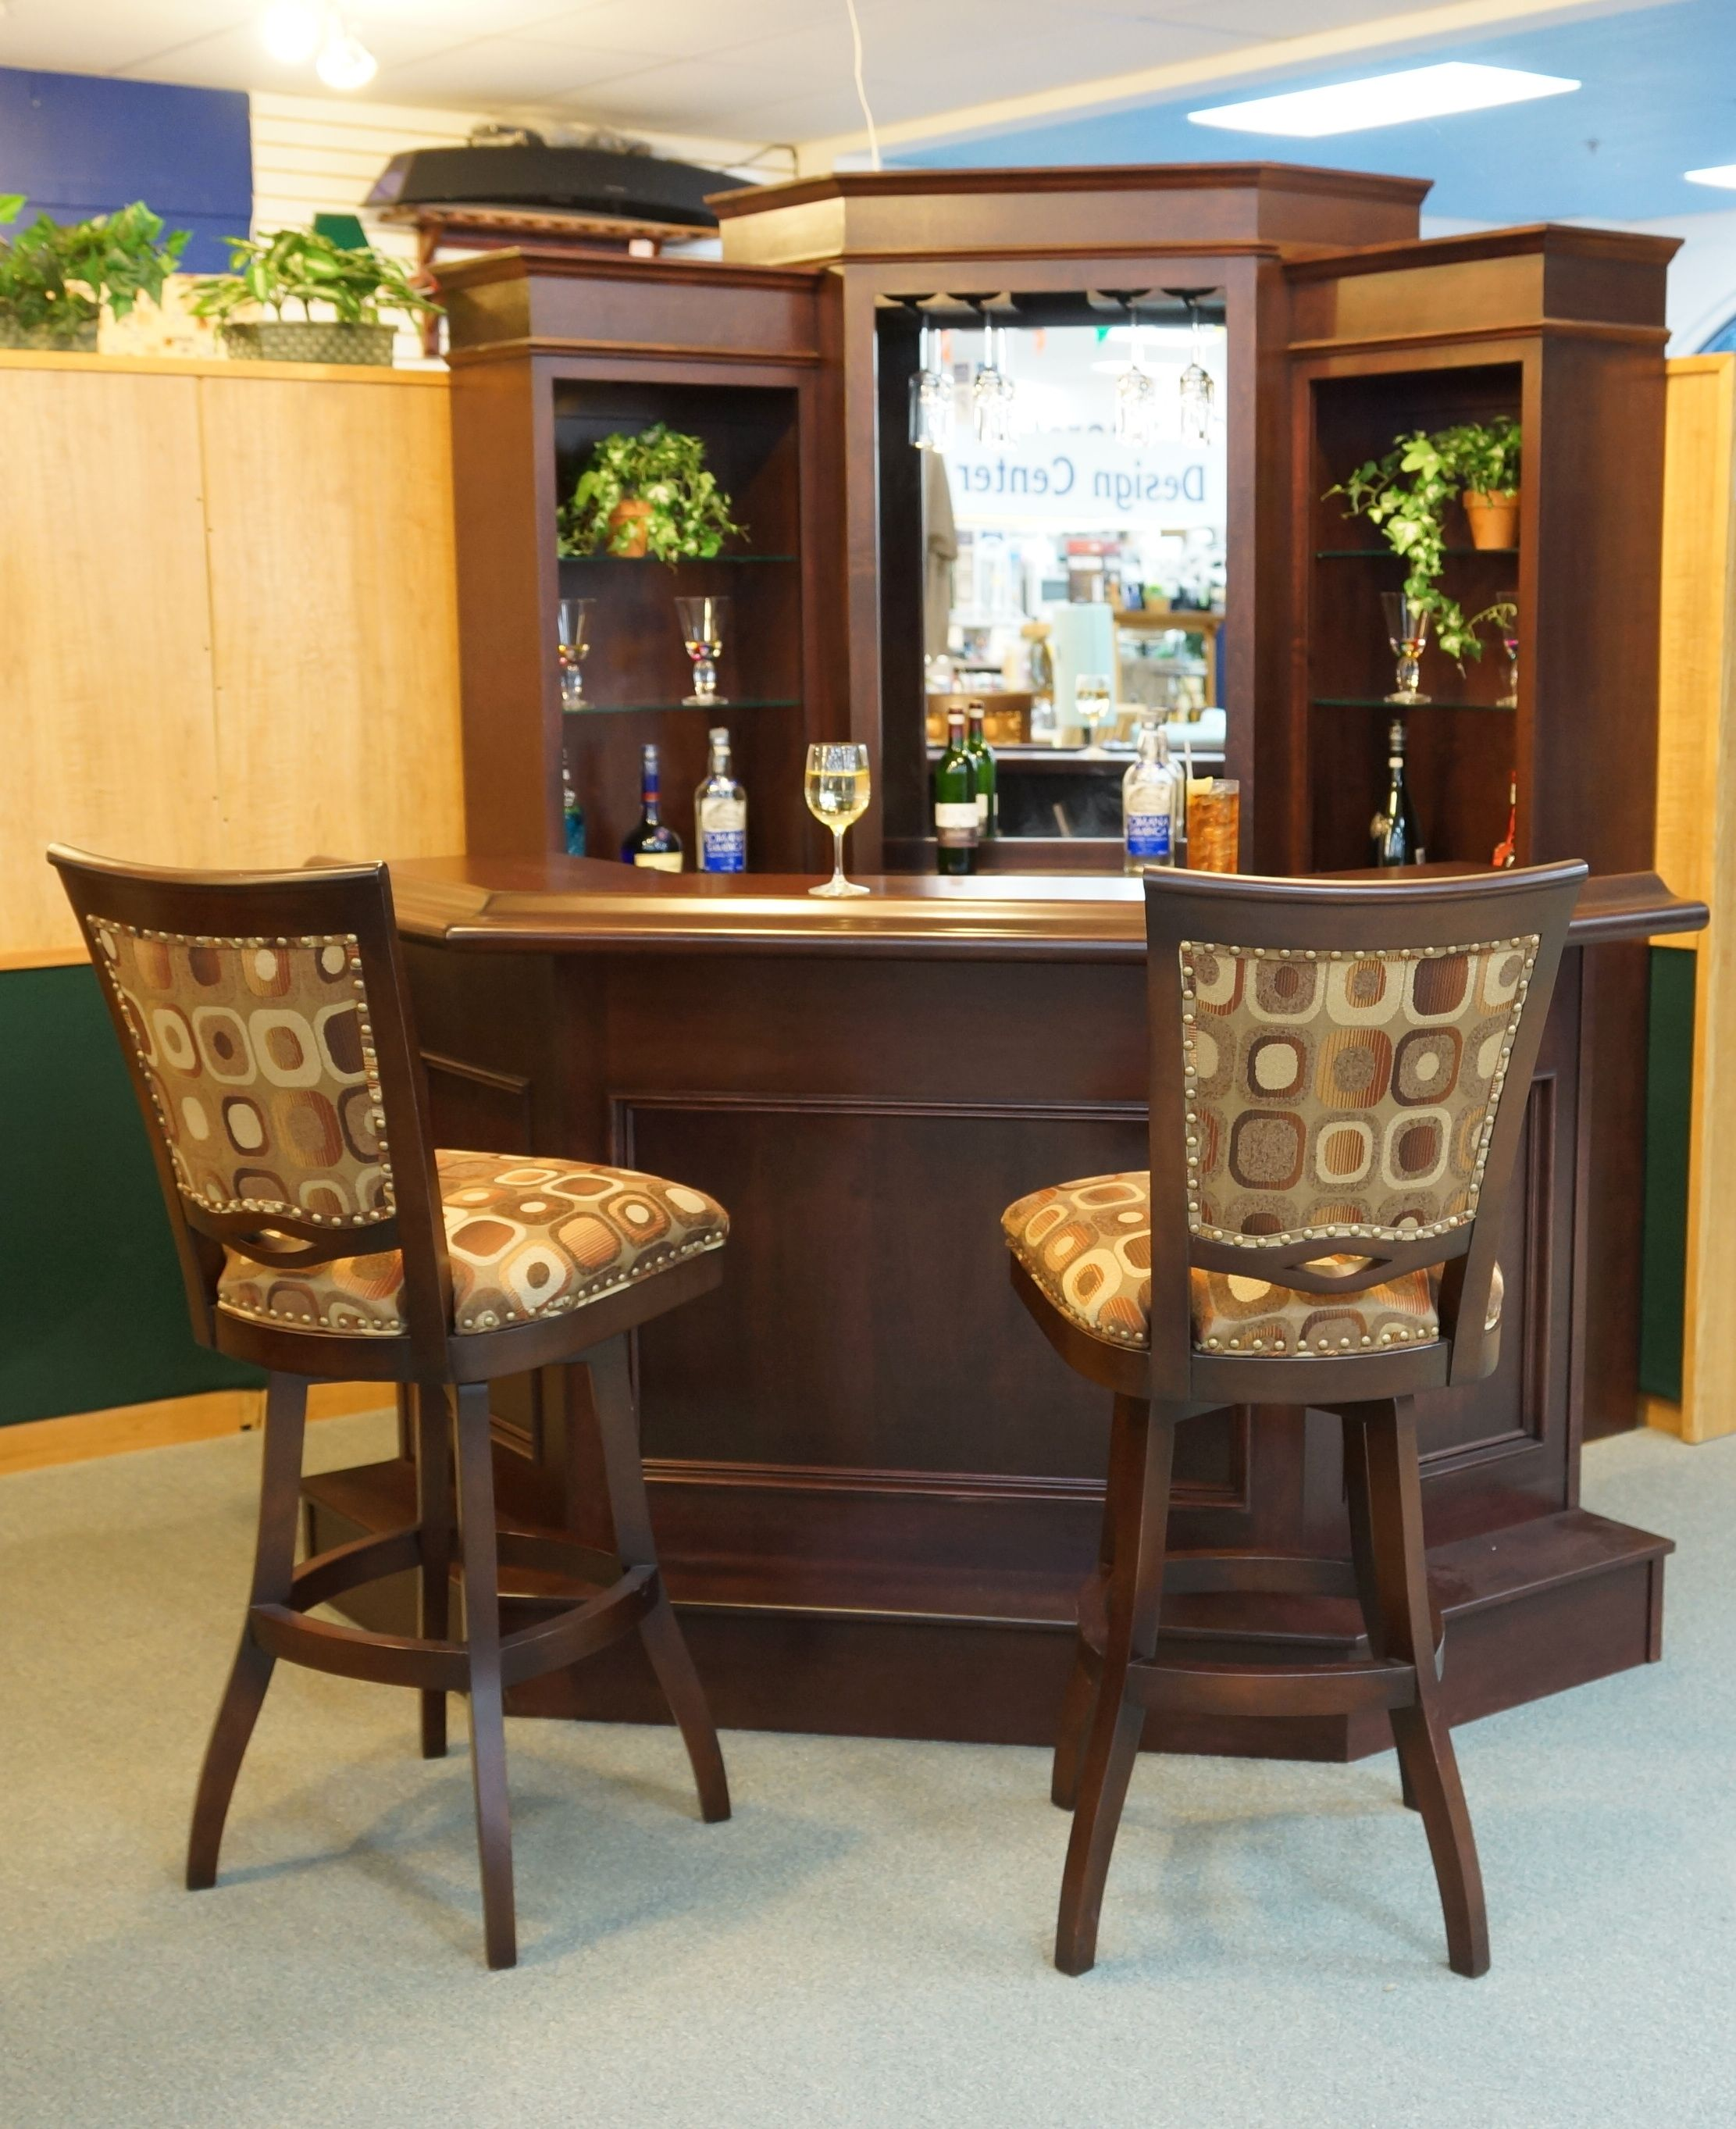 Corner Bar By Primocraft With Barstools By Tobias Designs Home